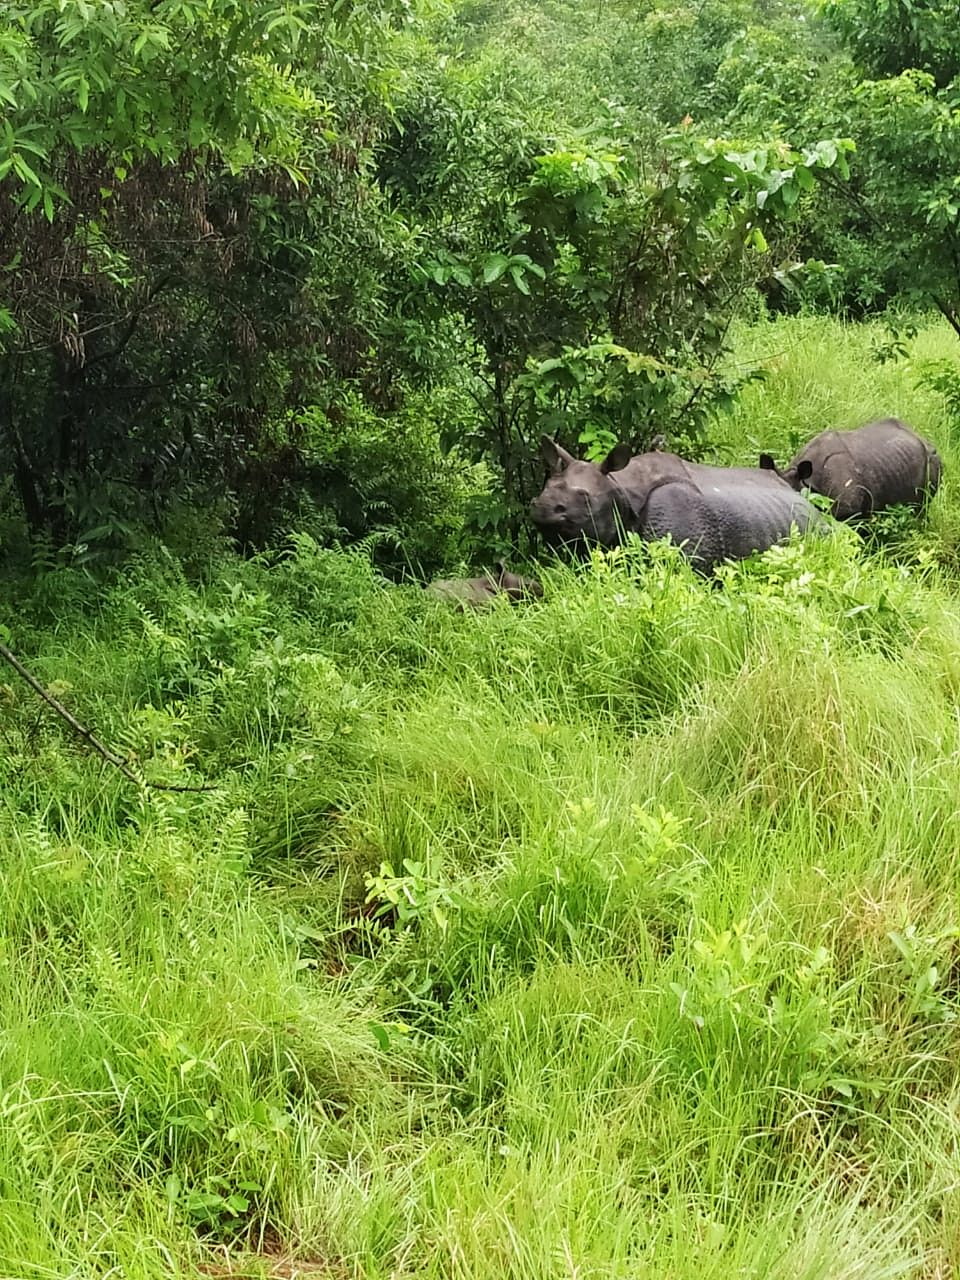 With the birth of a new calf, the total number of rhinos at Manas National Park has increased to 40